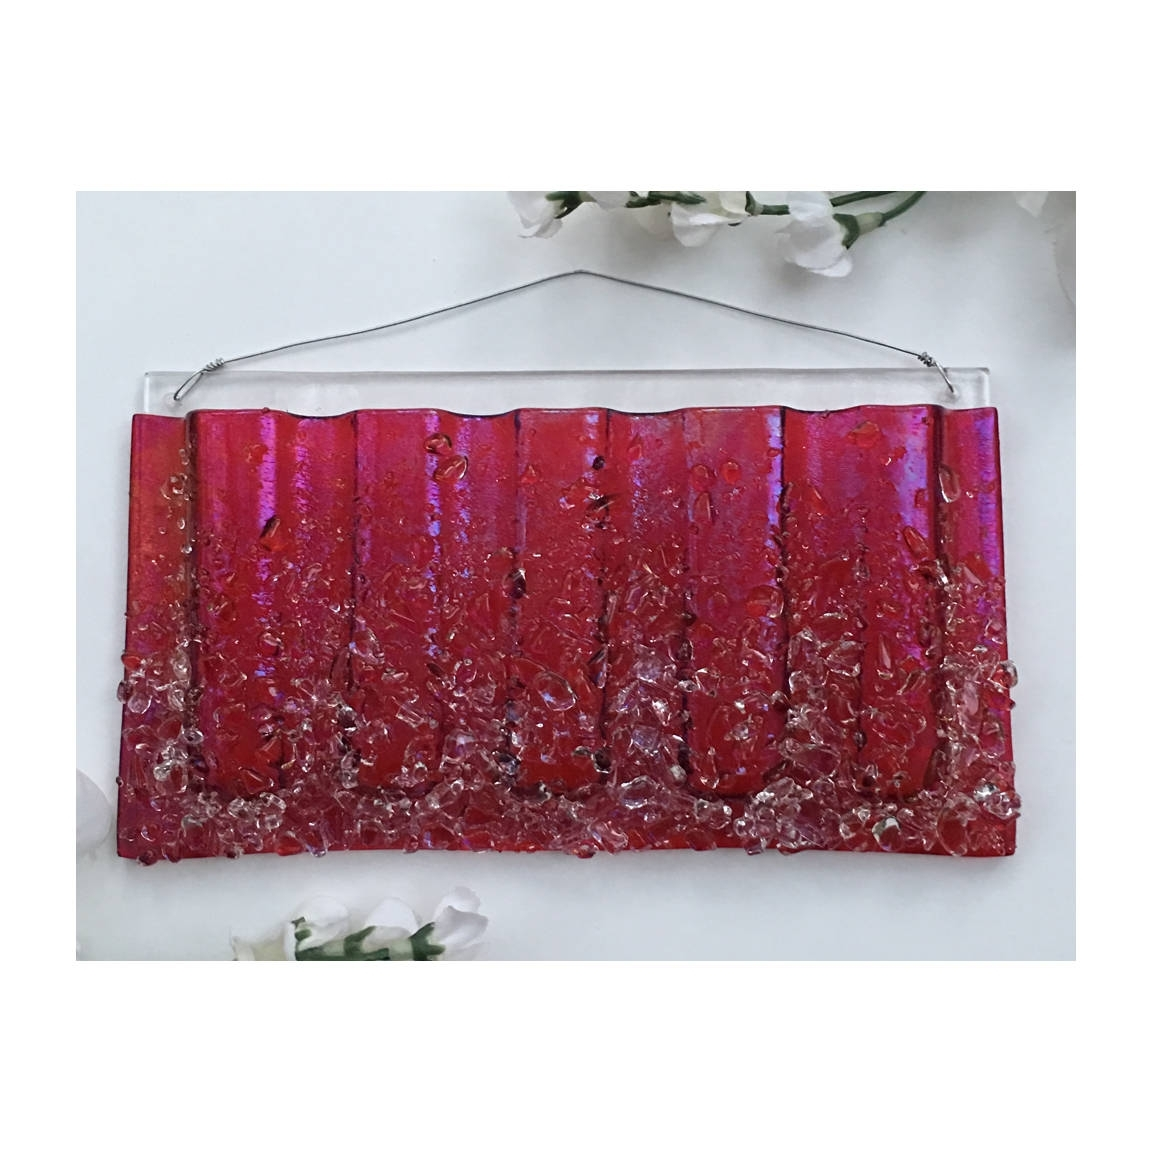 Most Recent Fused Glass Wall Art For Sale Throughout Large Horizontal. Wall Art, Fused Glass, Wall Vase, Glass Pocket (View 13 of 15)